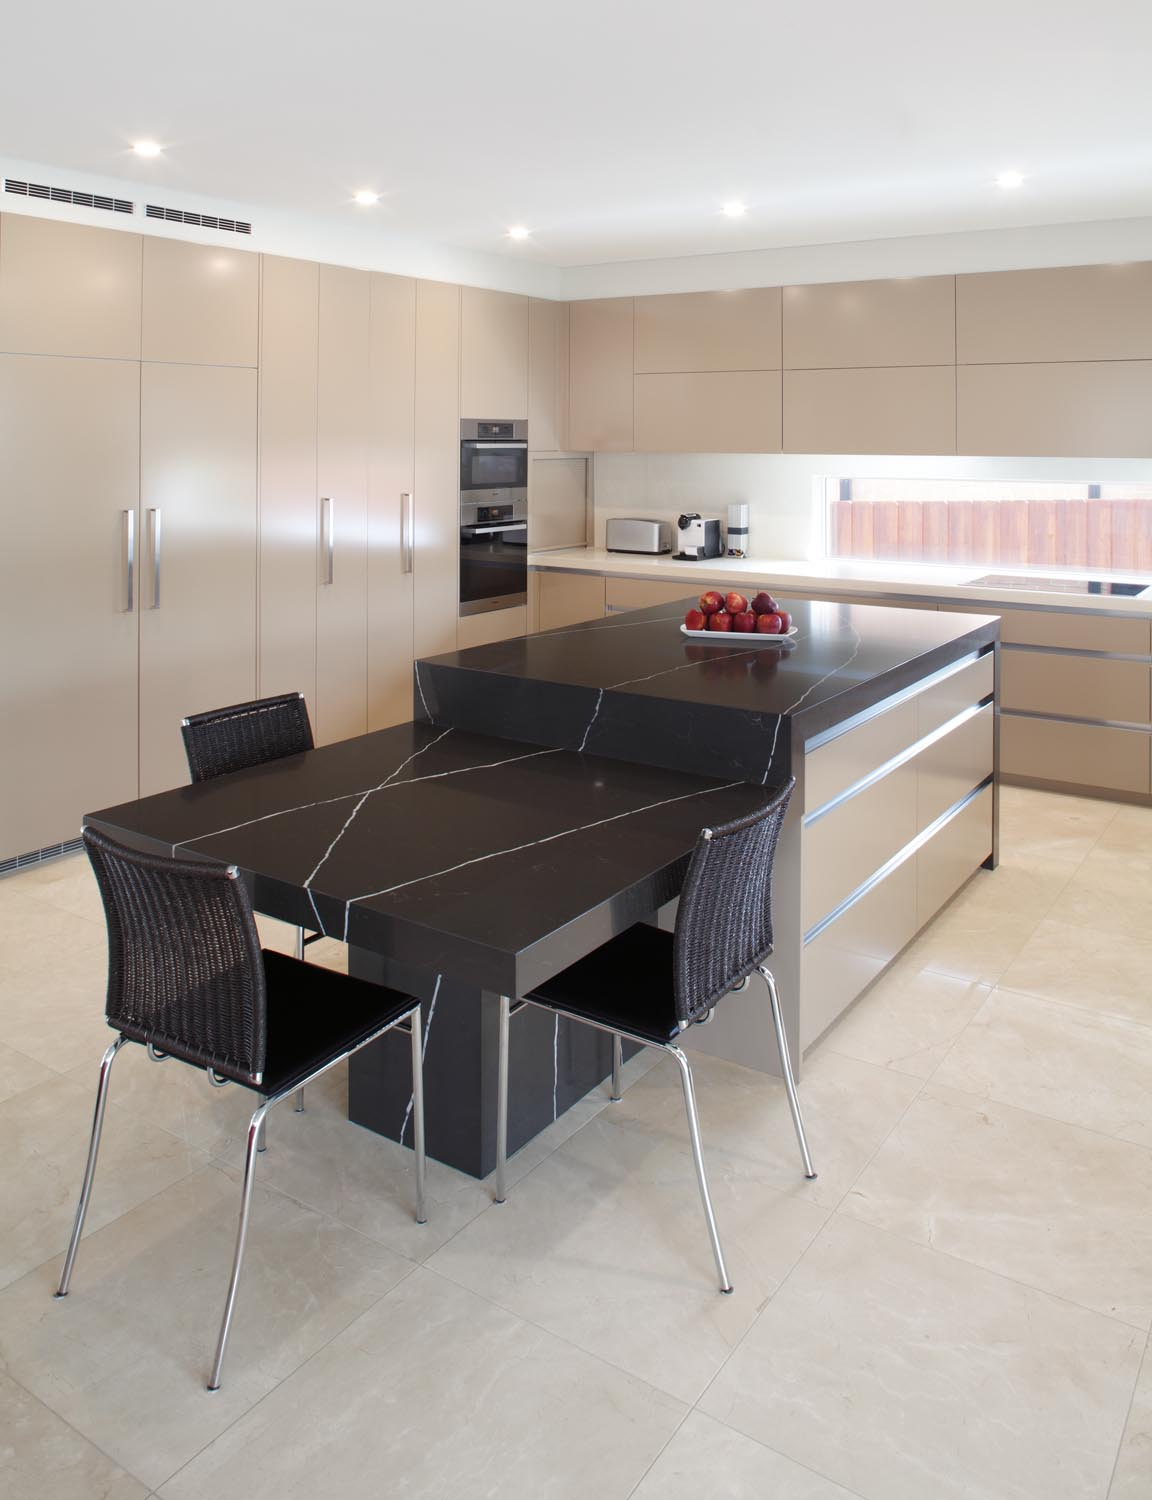 Functional kitchen with hidden laundry